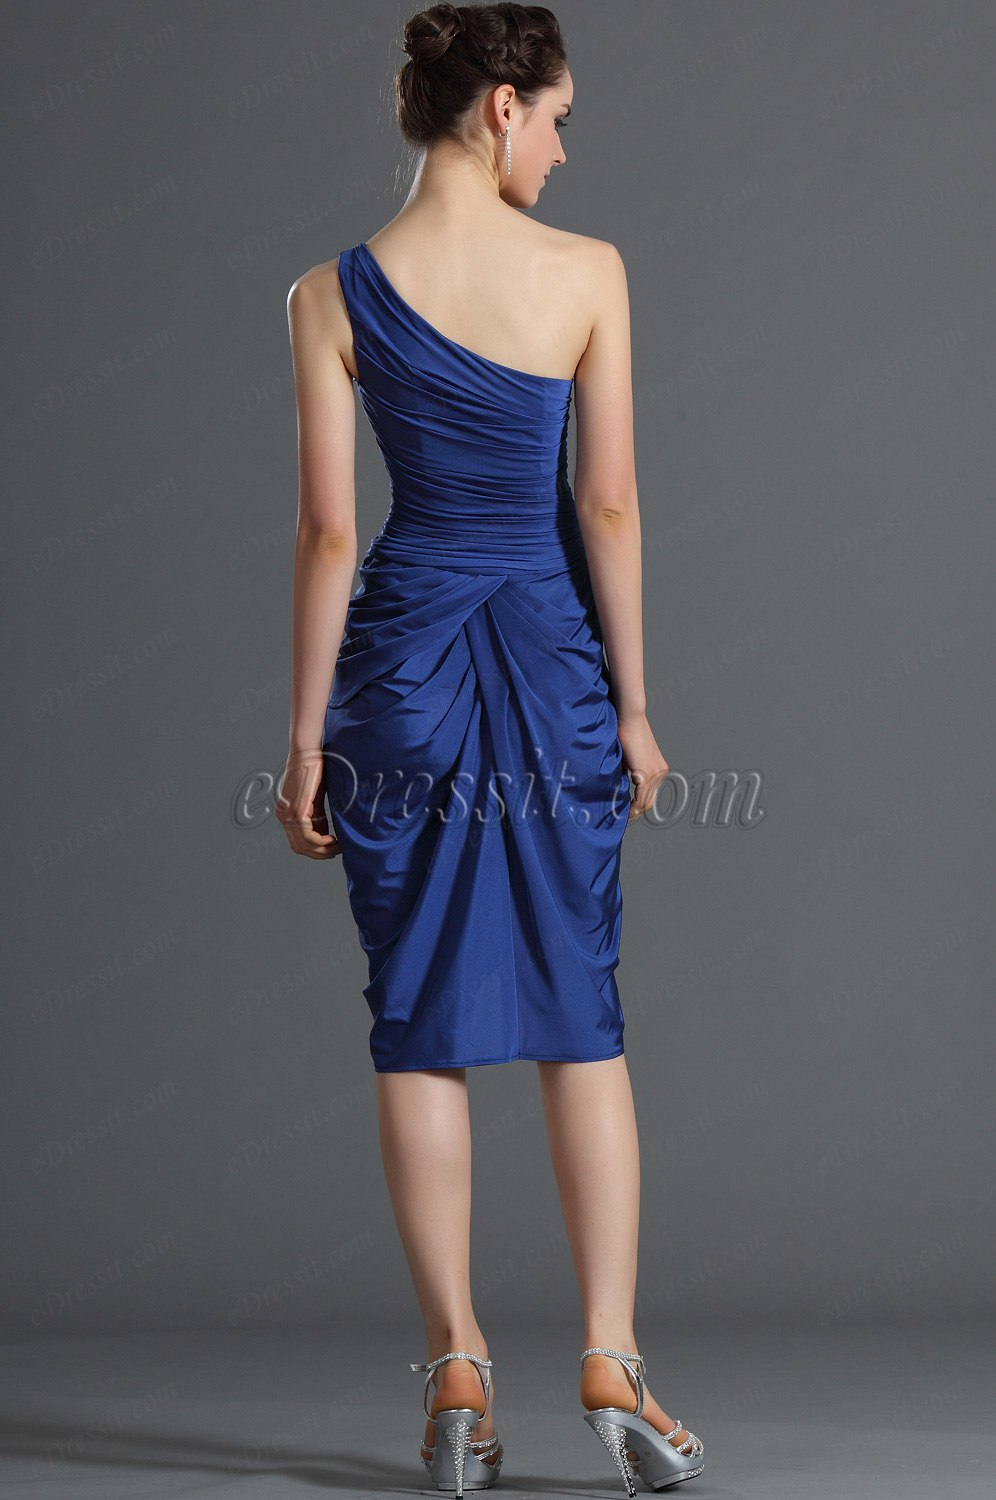 Wearing a one-shoulder formal gown, single-strap party dress, or prom dress with one shoulder is on trend this season. This trendy fashion style has been rejuvenated and is .